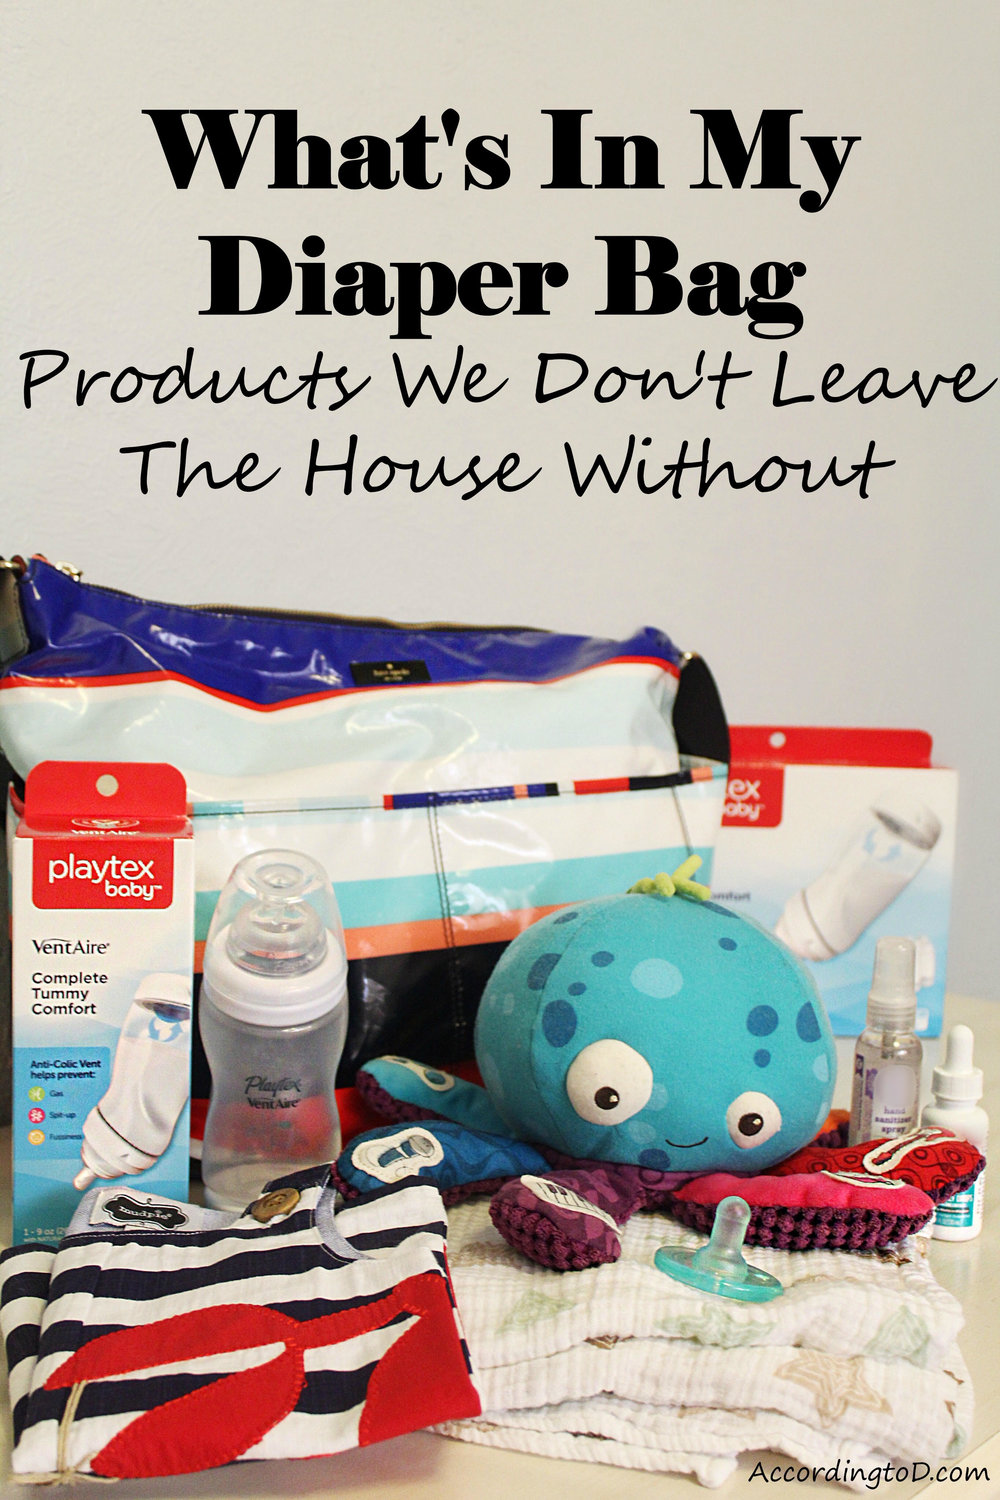 whats-in-my-diaper-bag-choose-playtex-baby.jpg